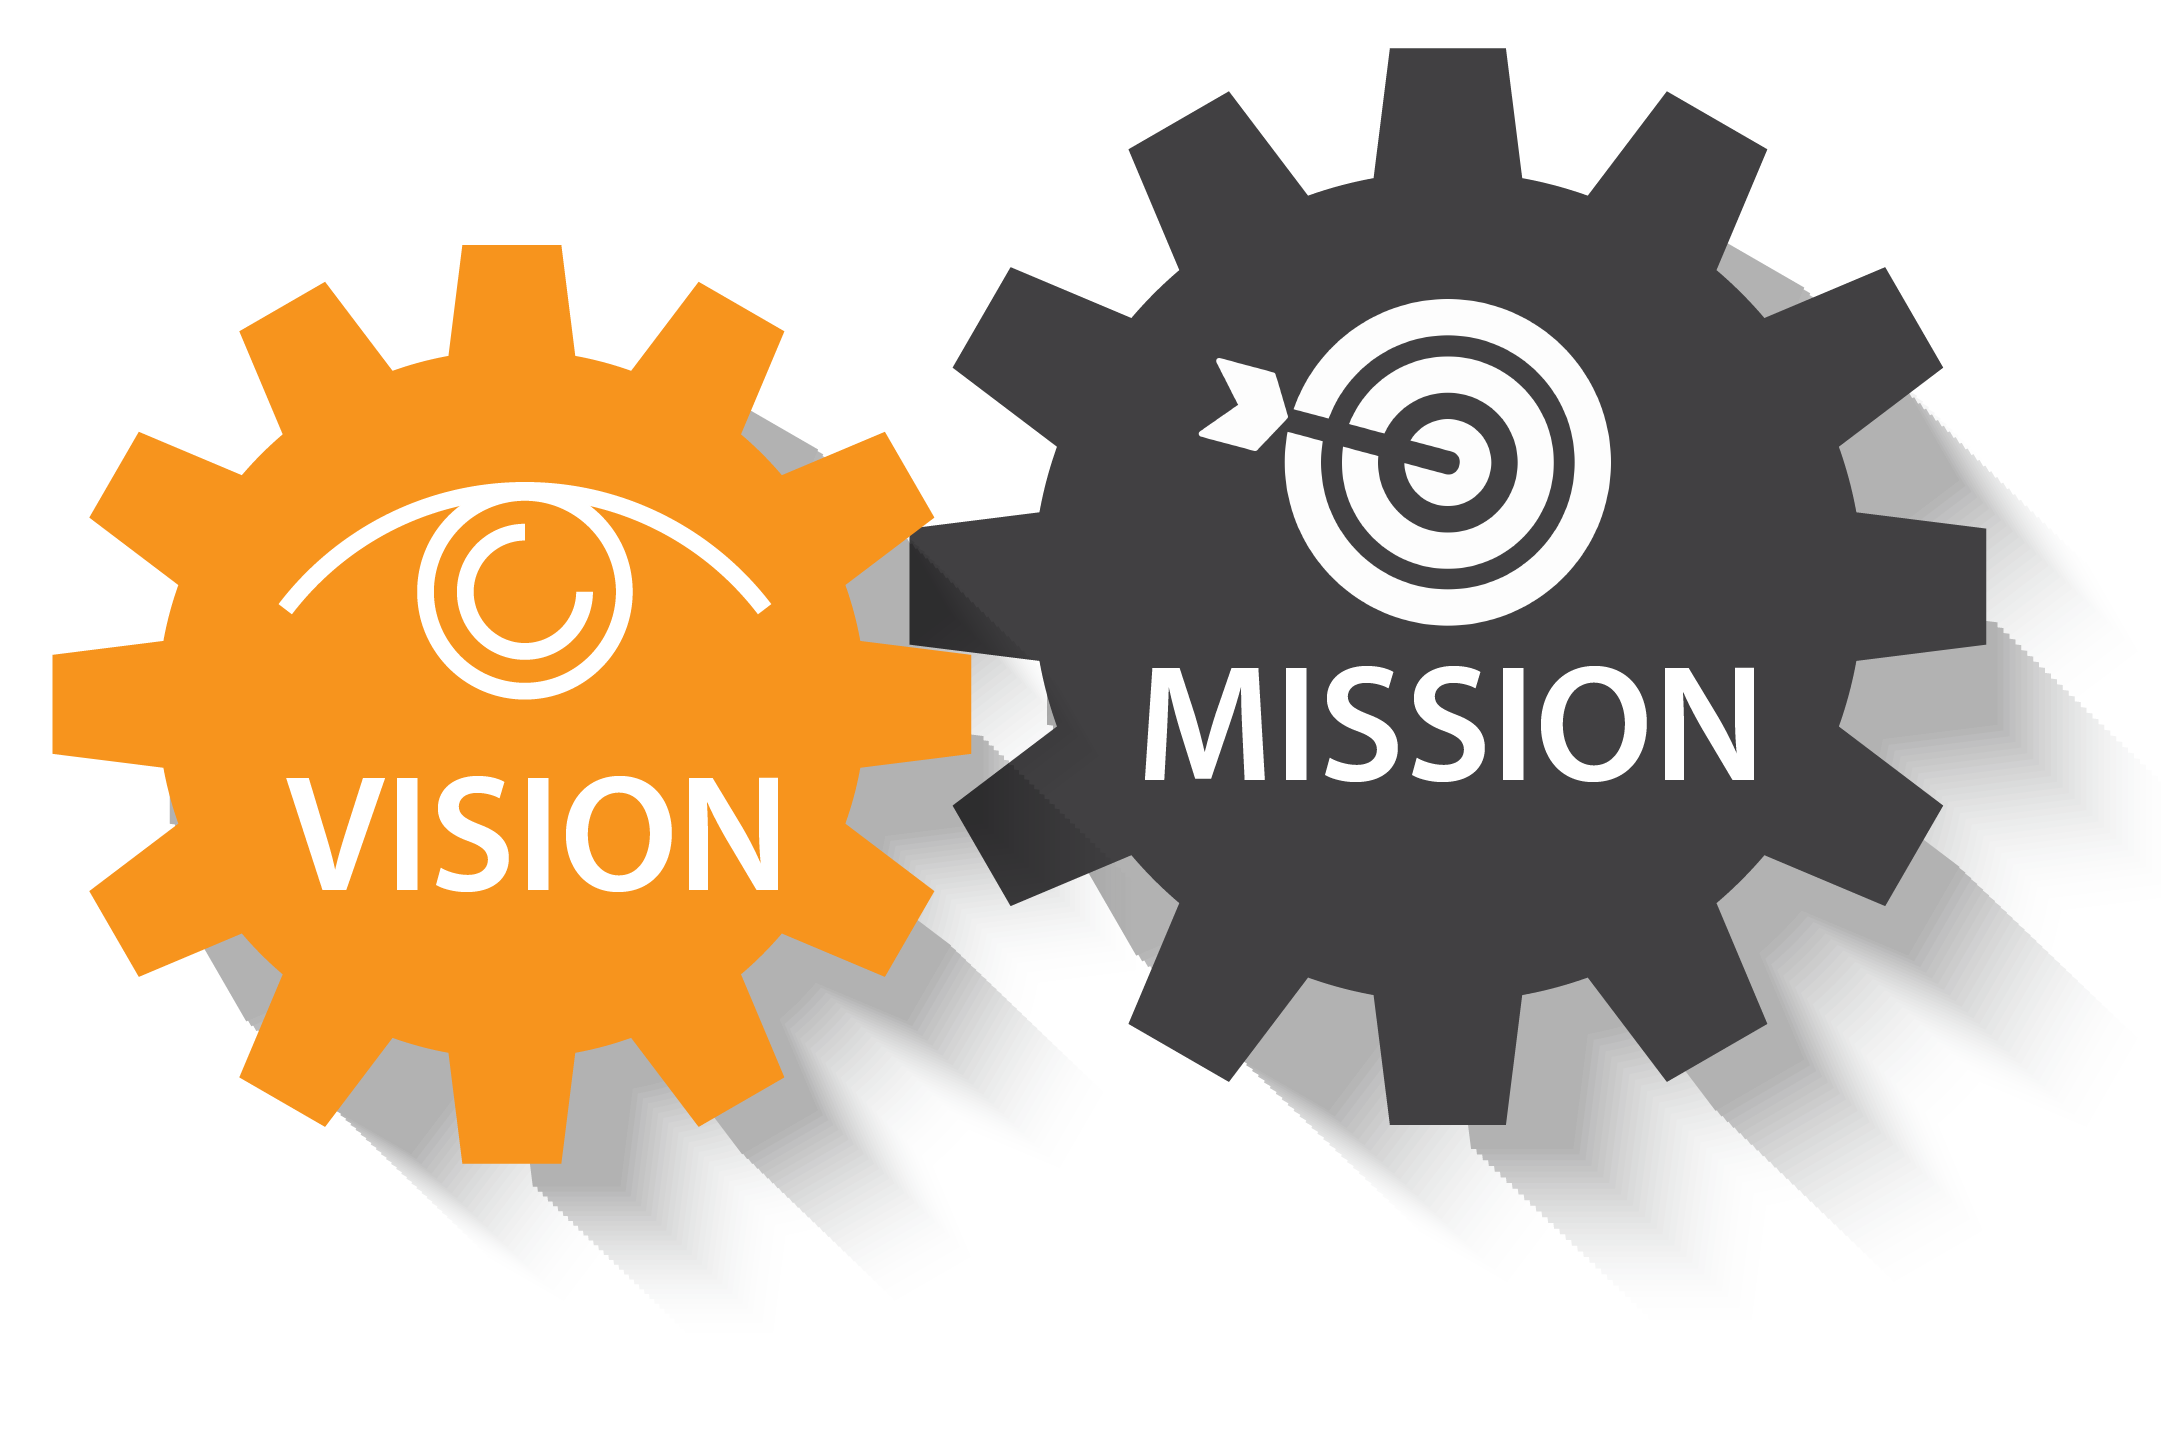 svg royalty free stock Vision clipart department. Cecsajdi consulting engineering center